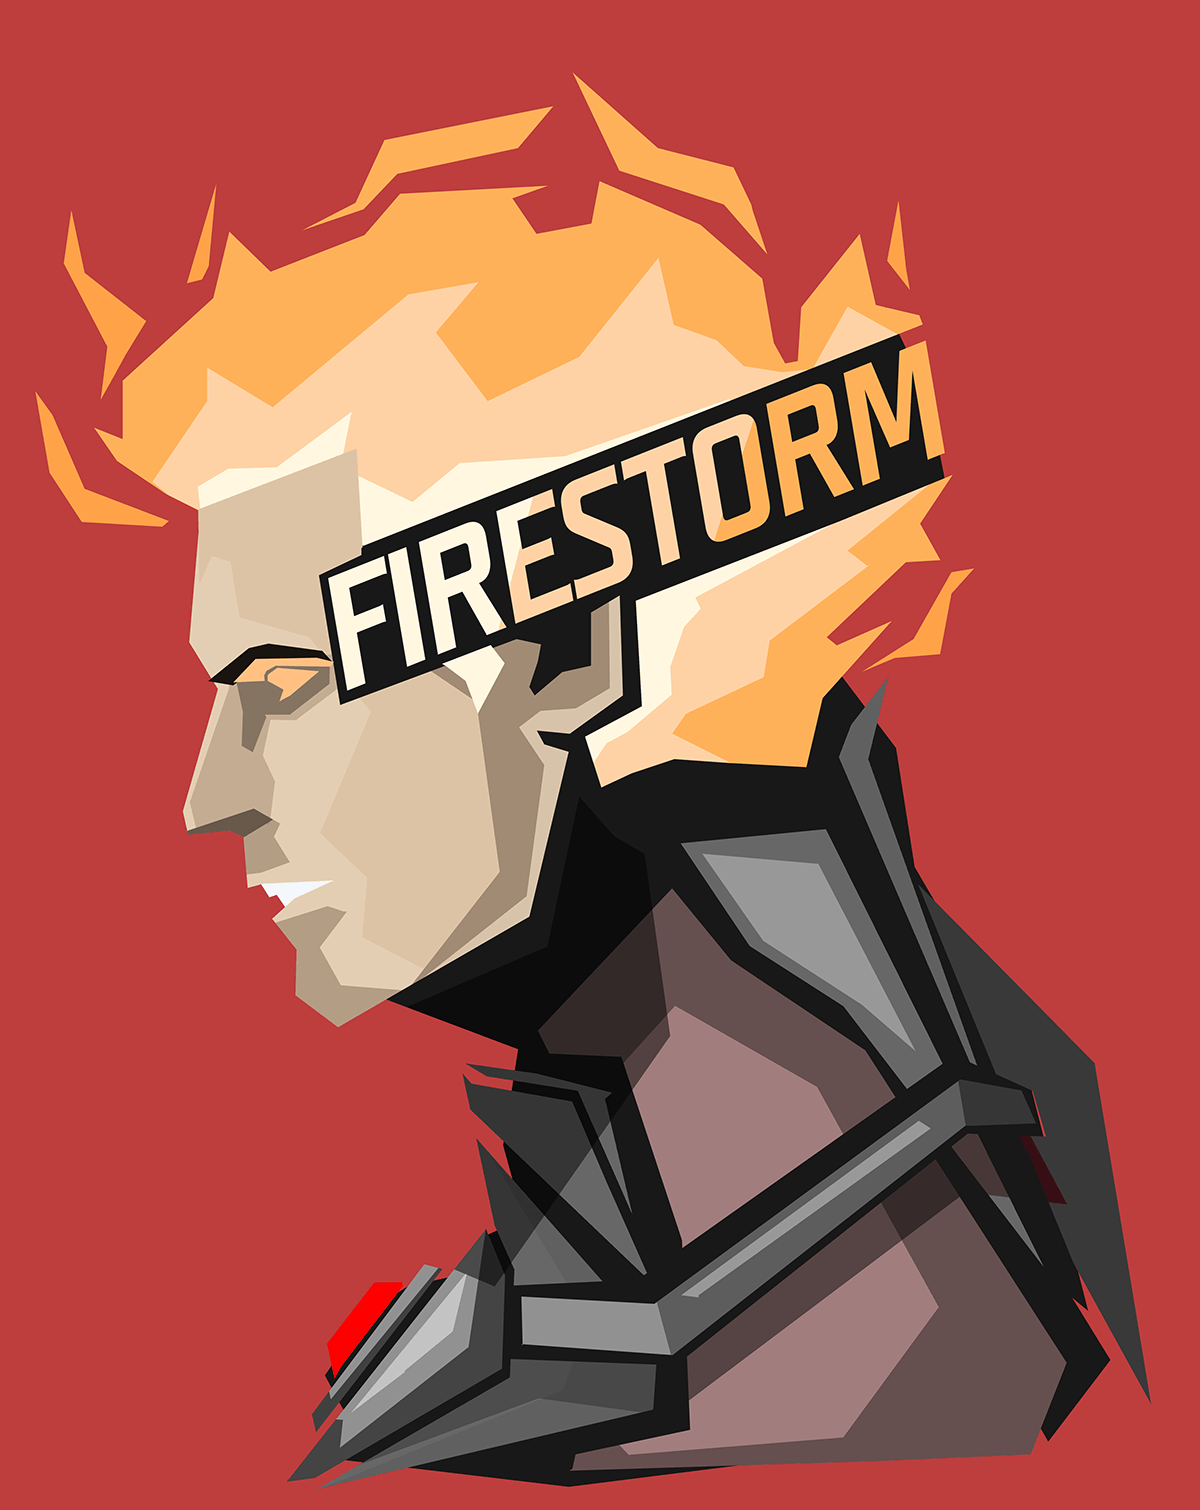 Firestorm, Comics, backgrounds